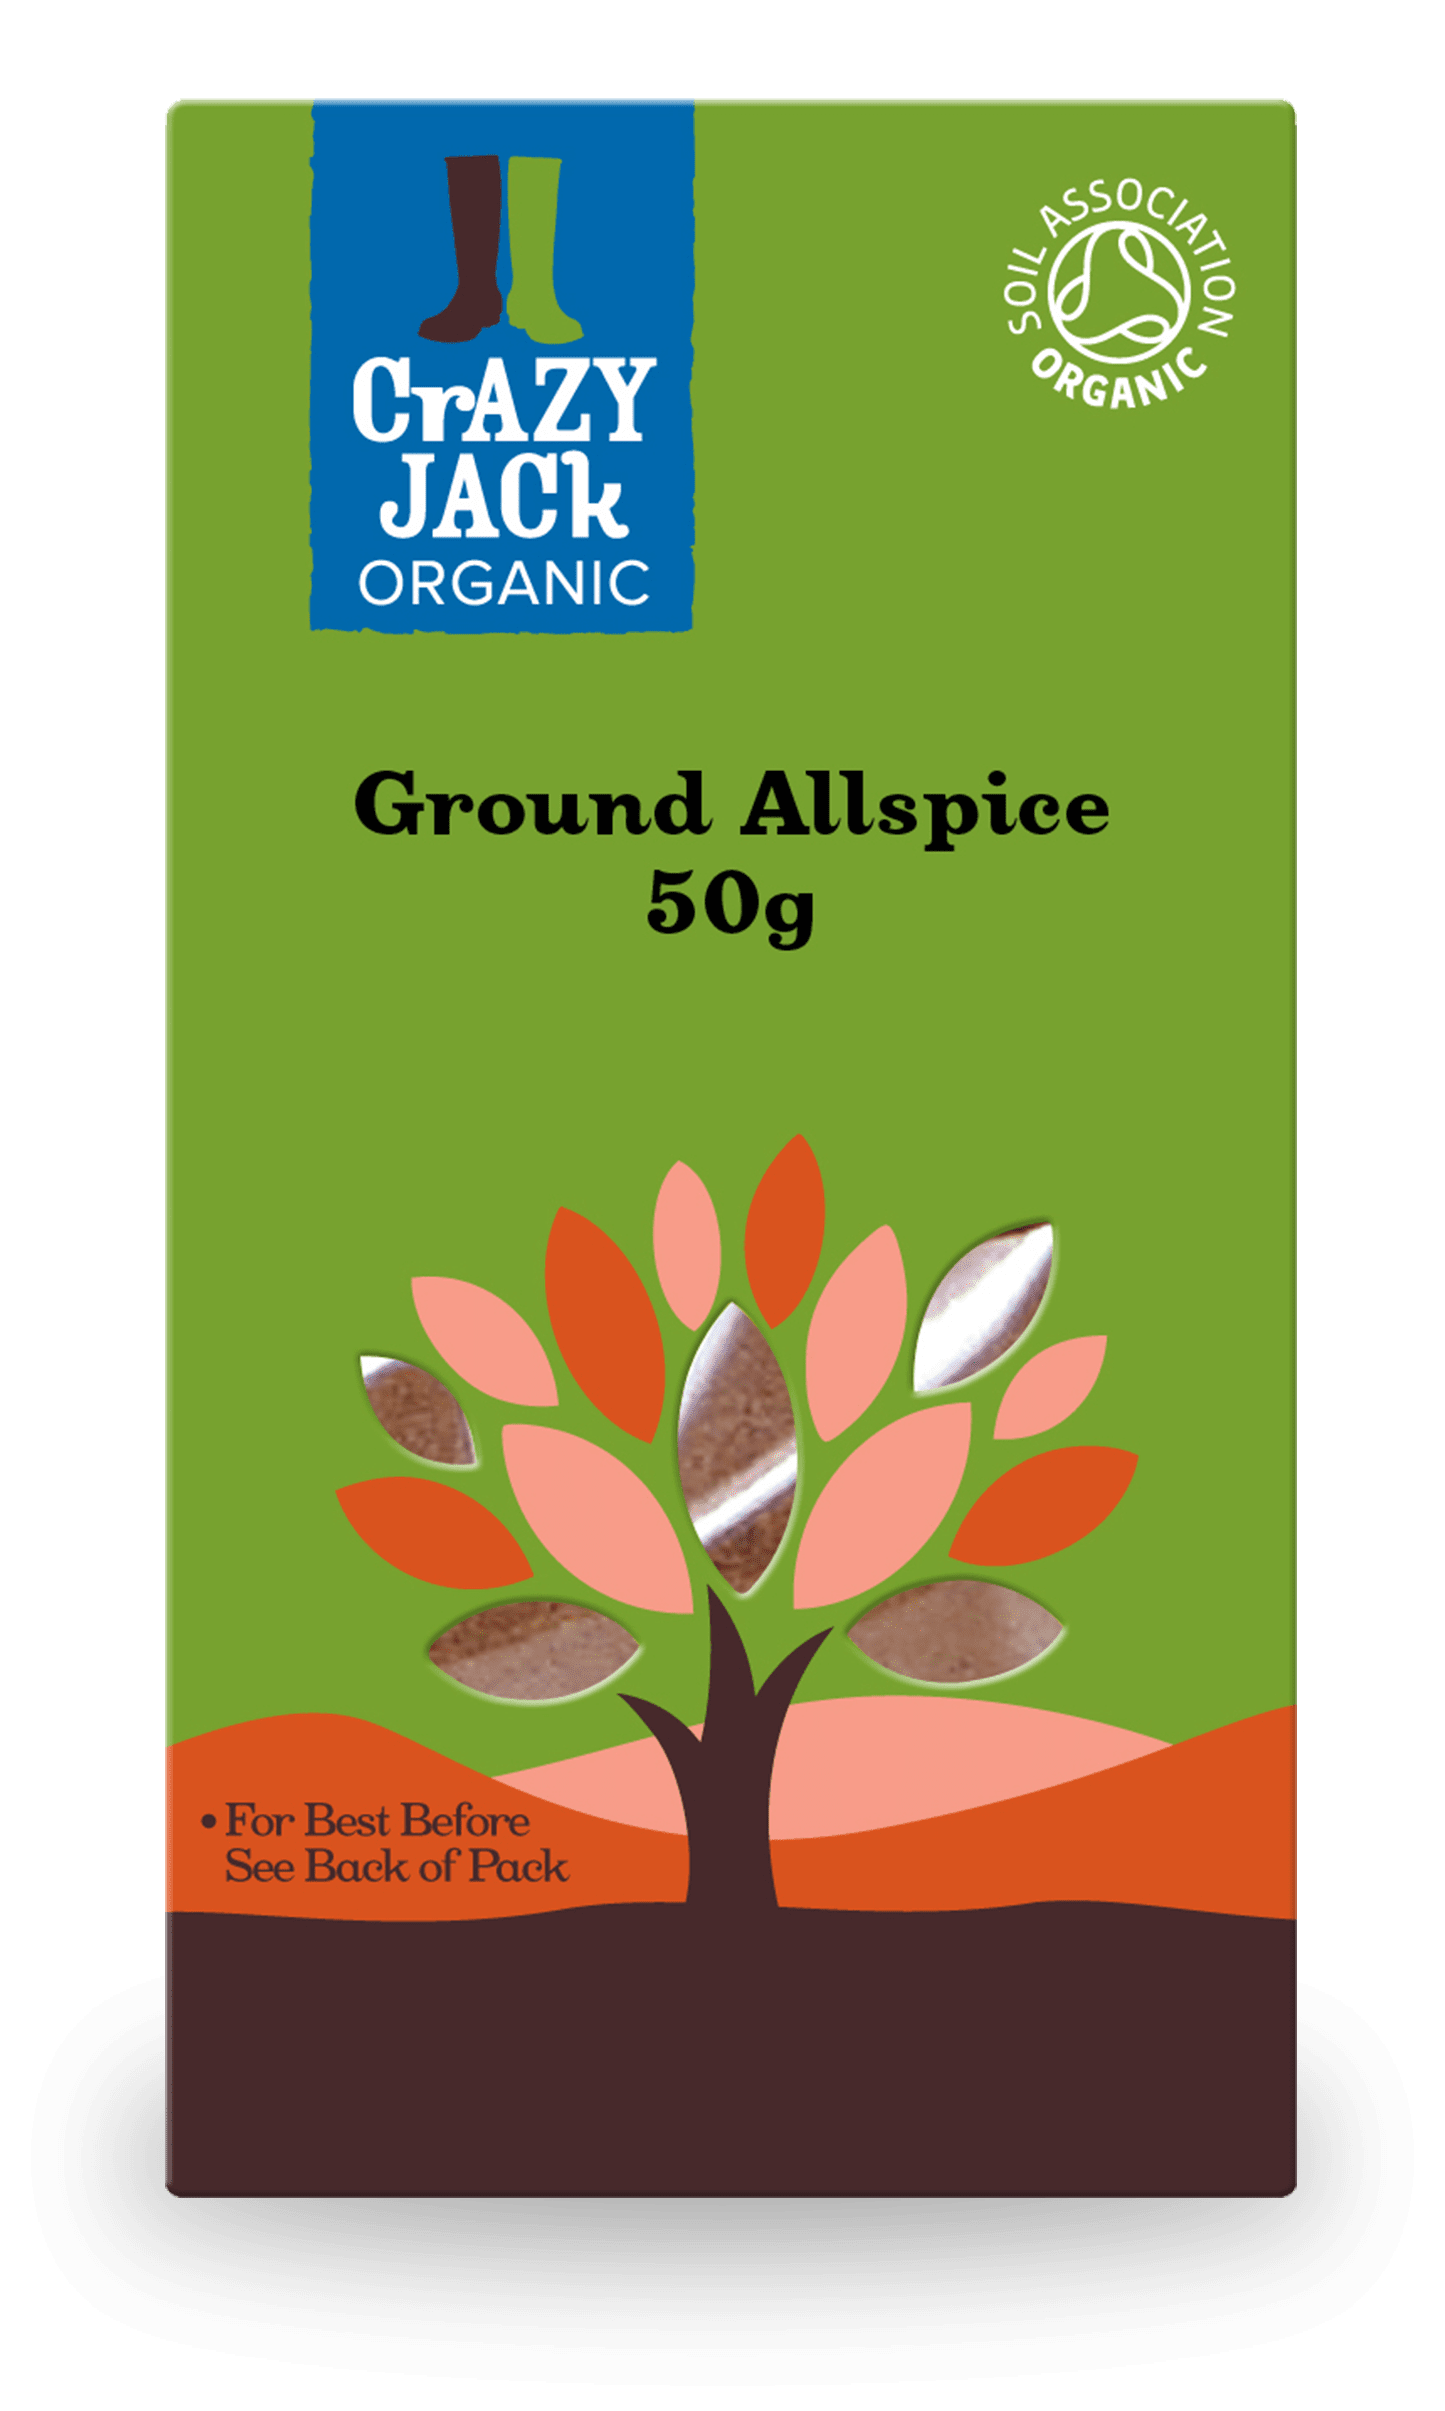 50g packet of organic ground allspice